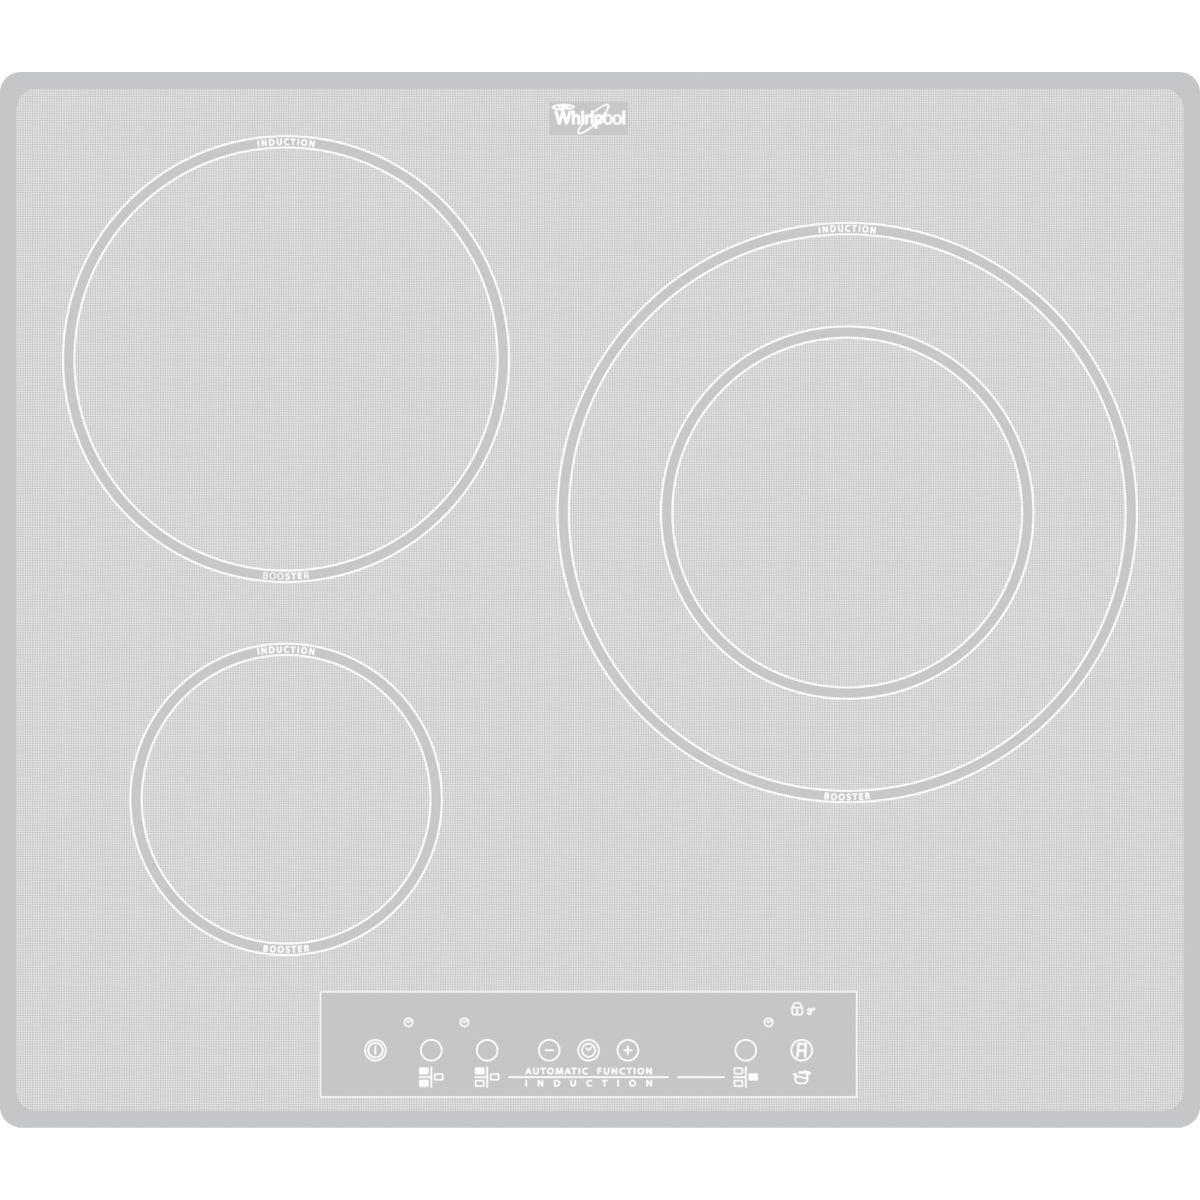 Table induction whirlpool acm680newh - livraison offerte : cod...